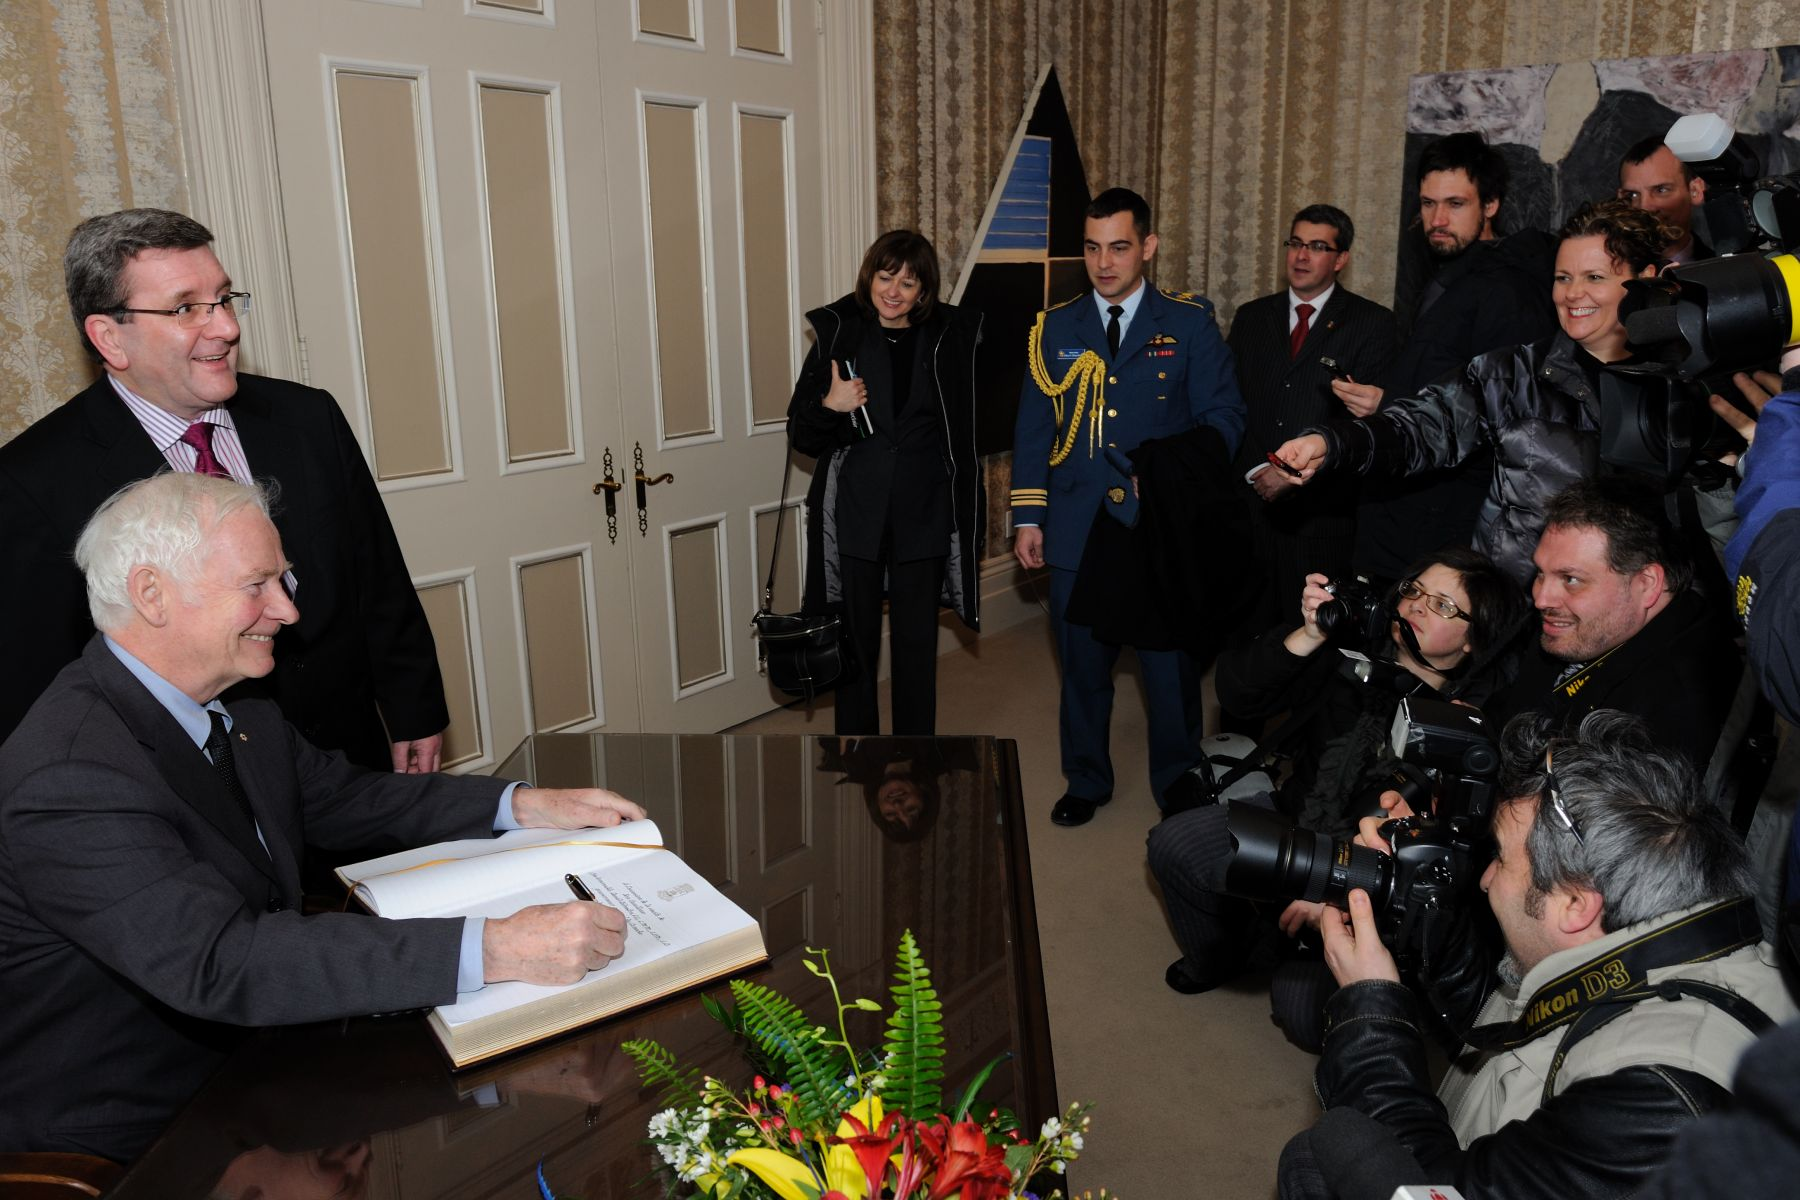 In front of media, the Governor General signed the guest books.